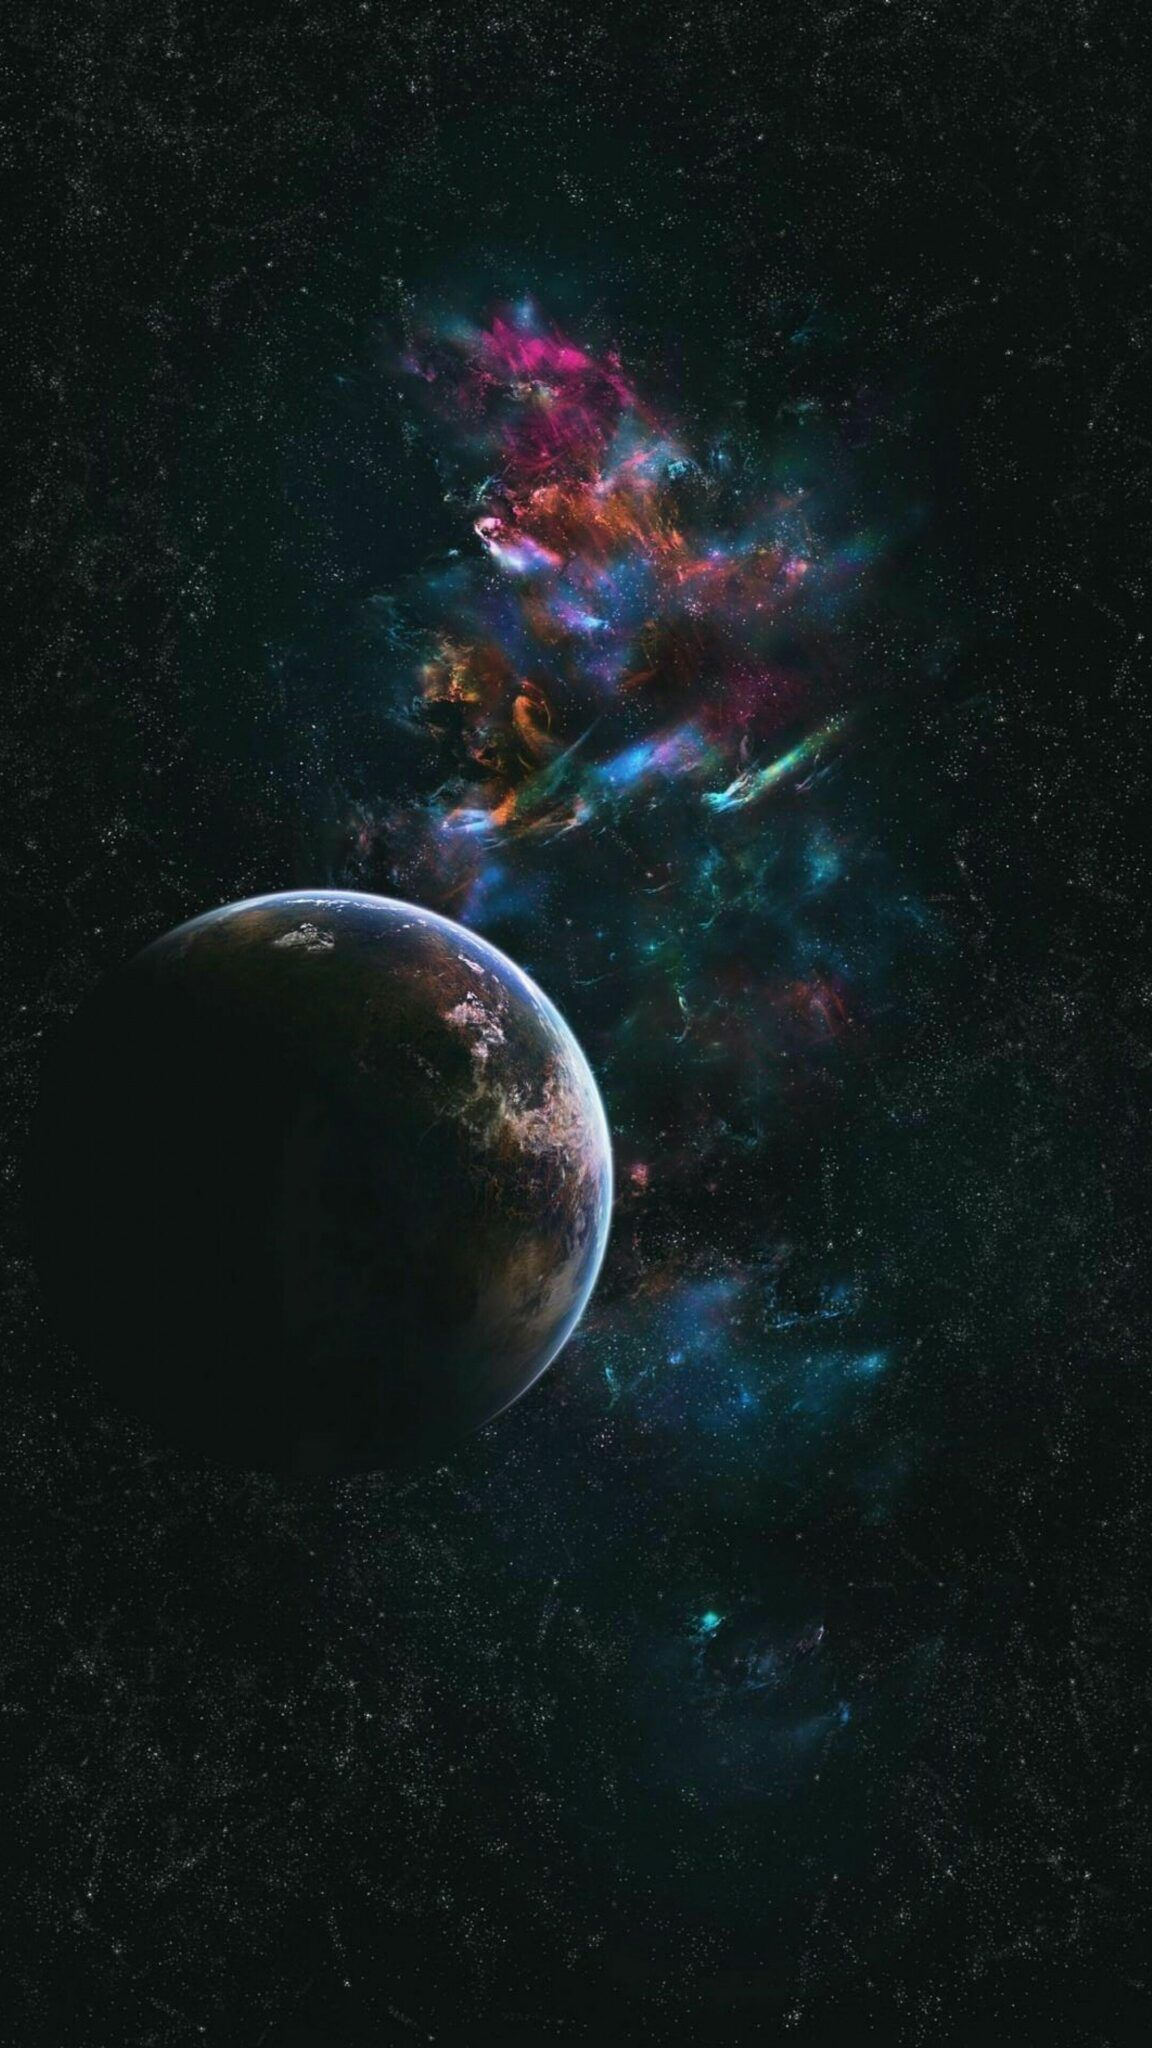 Iphone 12 Pro Max Space Wallpapers Wallpaper Cave